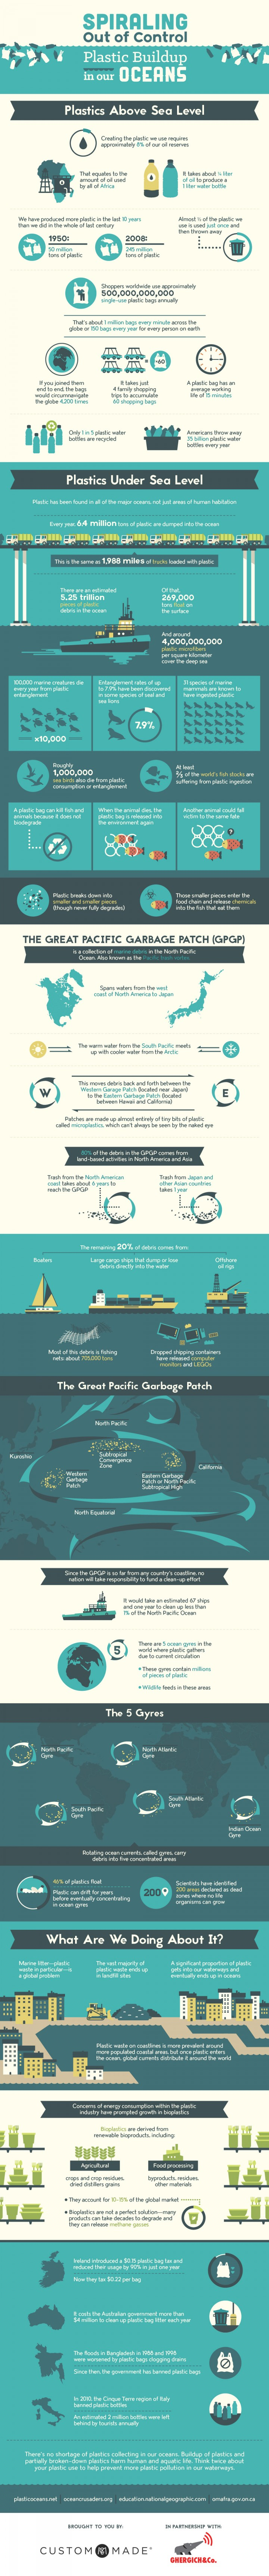 The Shocking Ways Plastic is Polluting Our Oceans (INFOGRAPHIC)